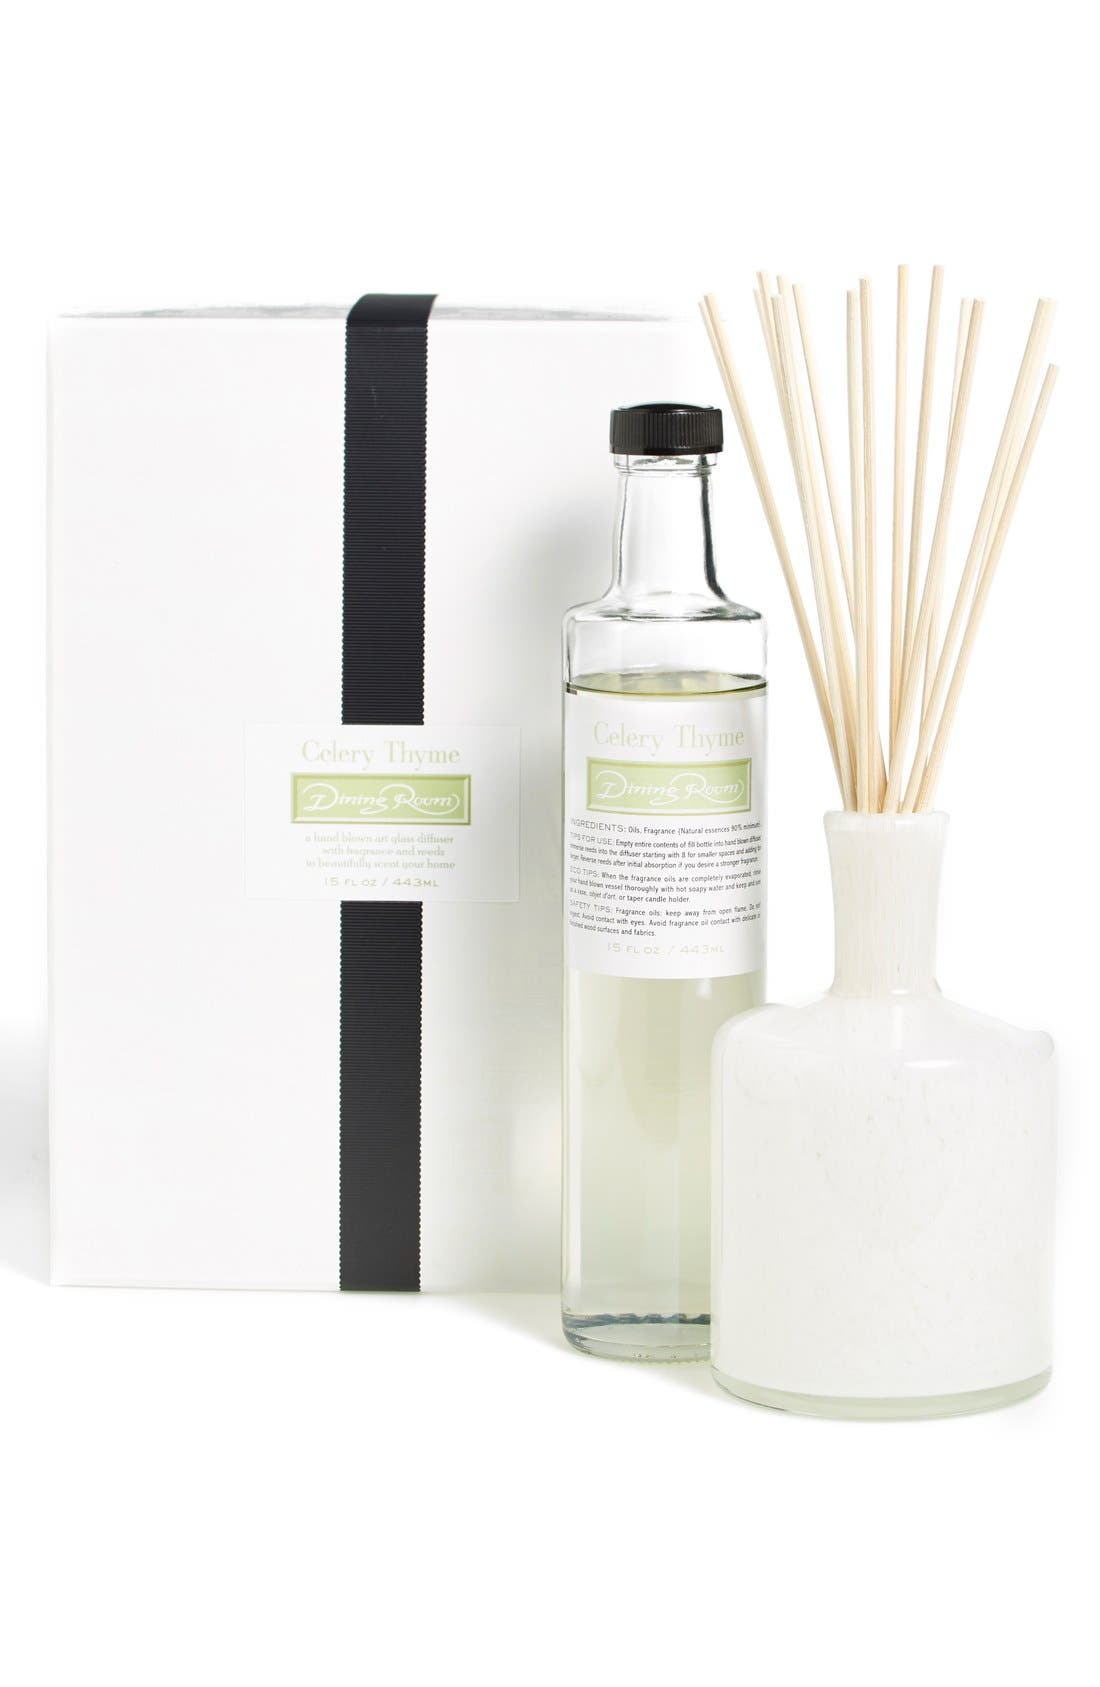 'Celery Thyme - Dining Room' Fragrance Diffuser,                             Alternate thumbnail 2, color,                             NO COLOR